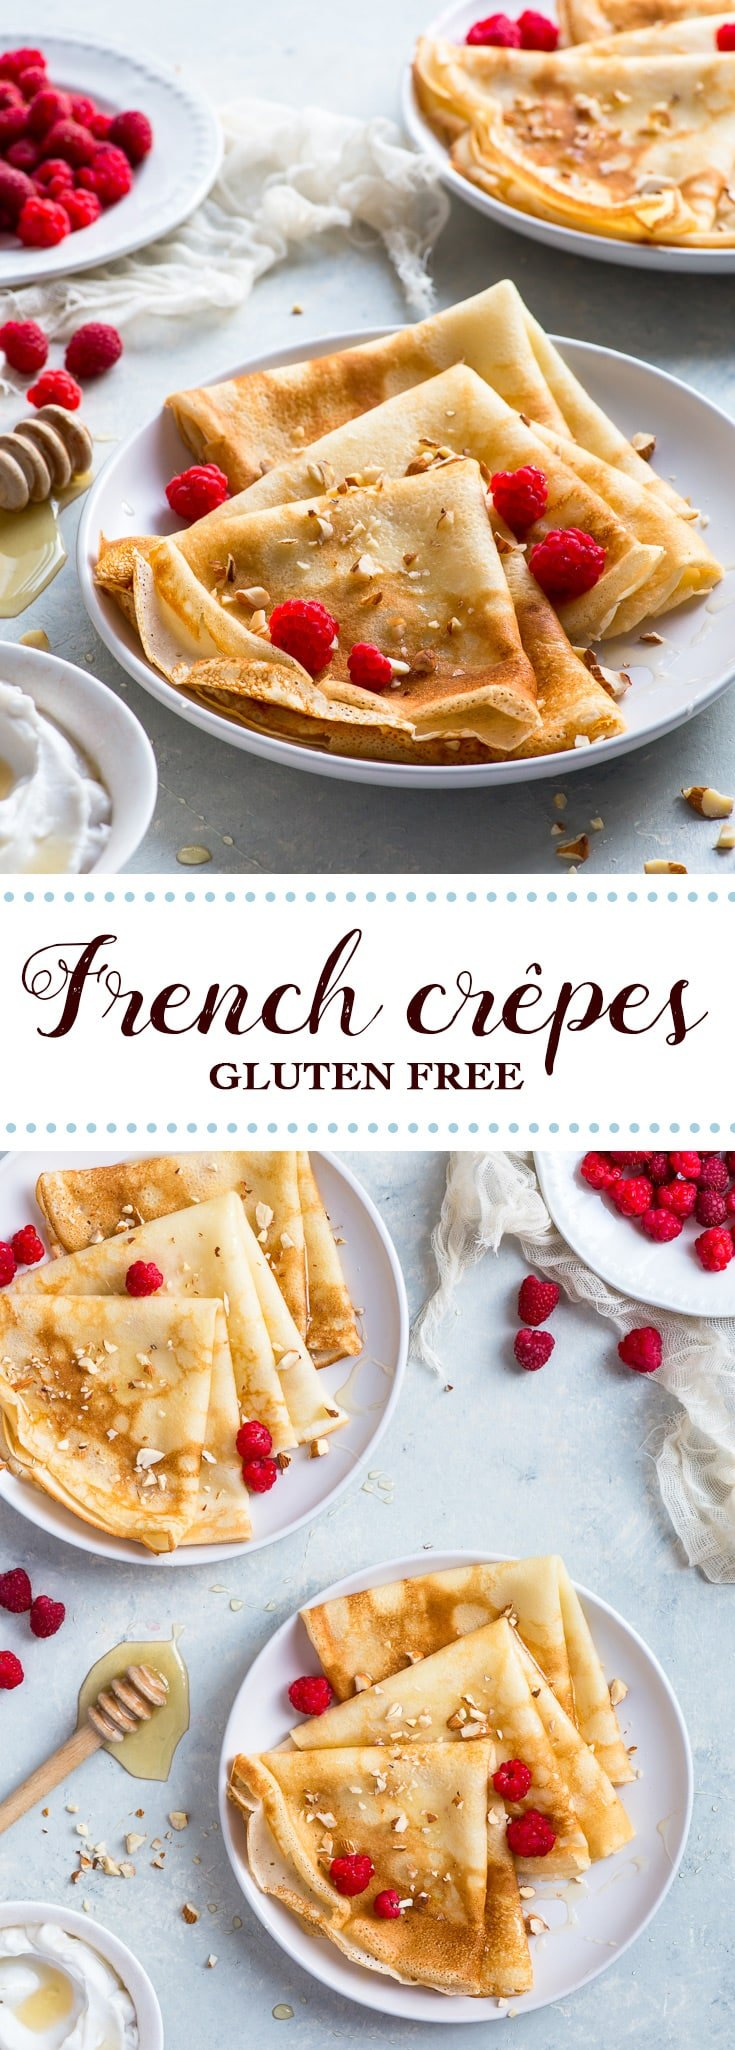 Gluten Free Crepes (French Style Gluten Free Pancakes) - Thin, delicate and perfect for filling with a multitude of toppings: these delicious gluten free crepes are easy and quick to prepare, and make an absolutely amazing breakfast treat! Gluten free dessert. Gluten free breakfast. Gluten free recipes. Pancake recipe. French crepe recipe. Breakfast ideas. Breakfast recipes. Easy breakfast recipe. Easy dessert recipe. #breakfast #pancakes #glutenfree #frenchcrepes #recipes